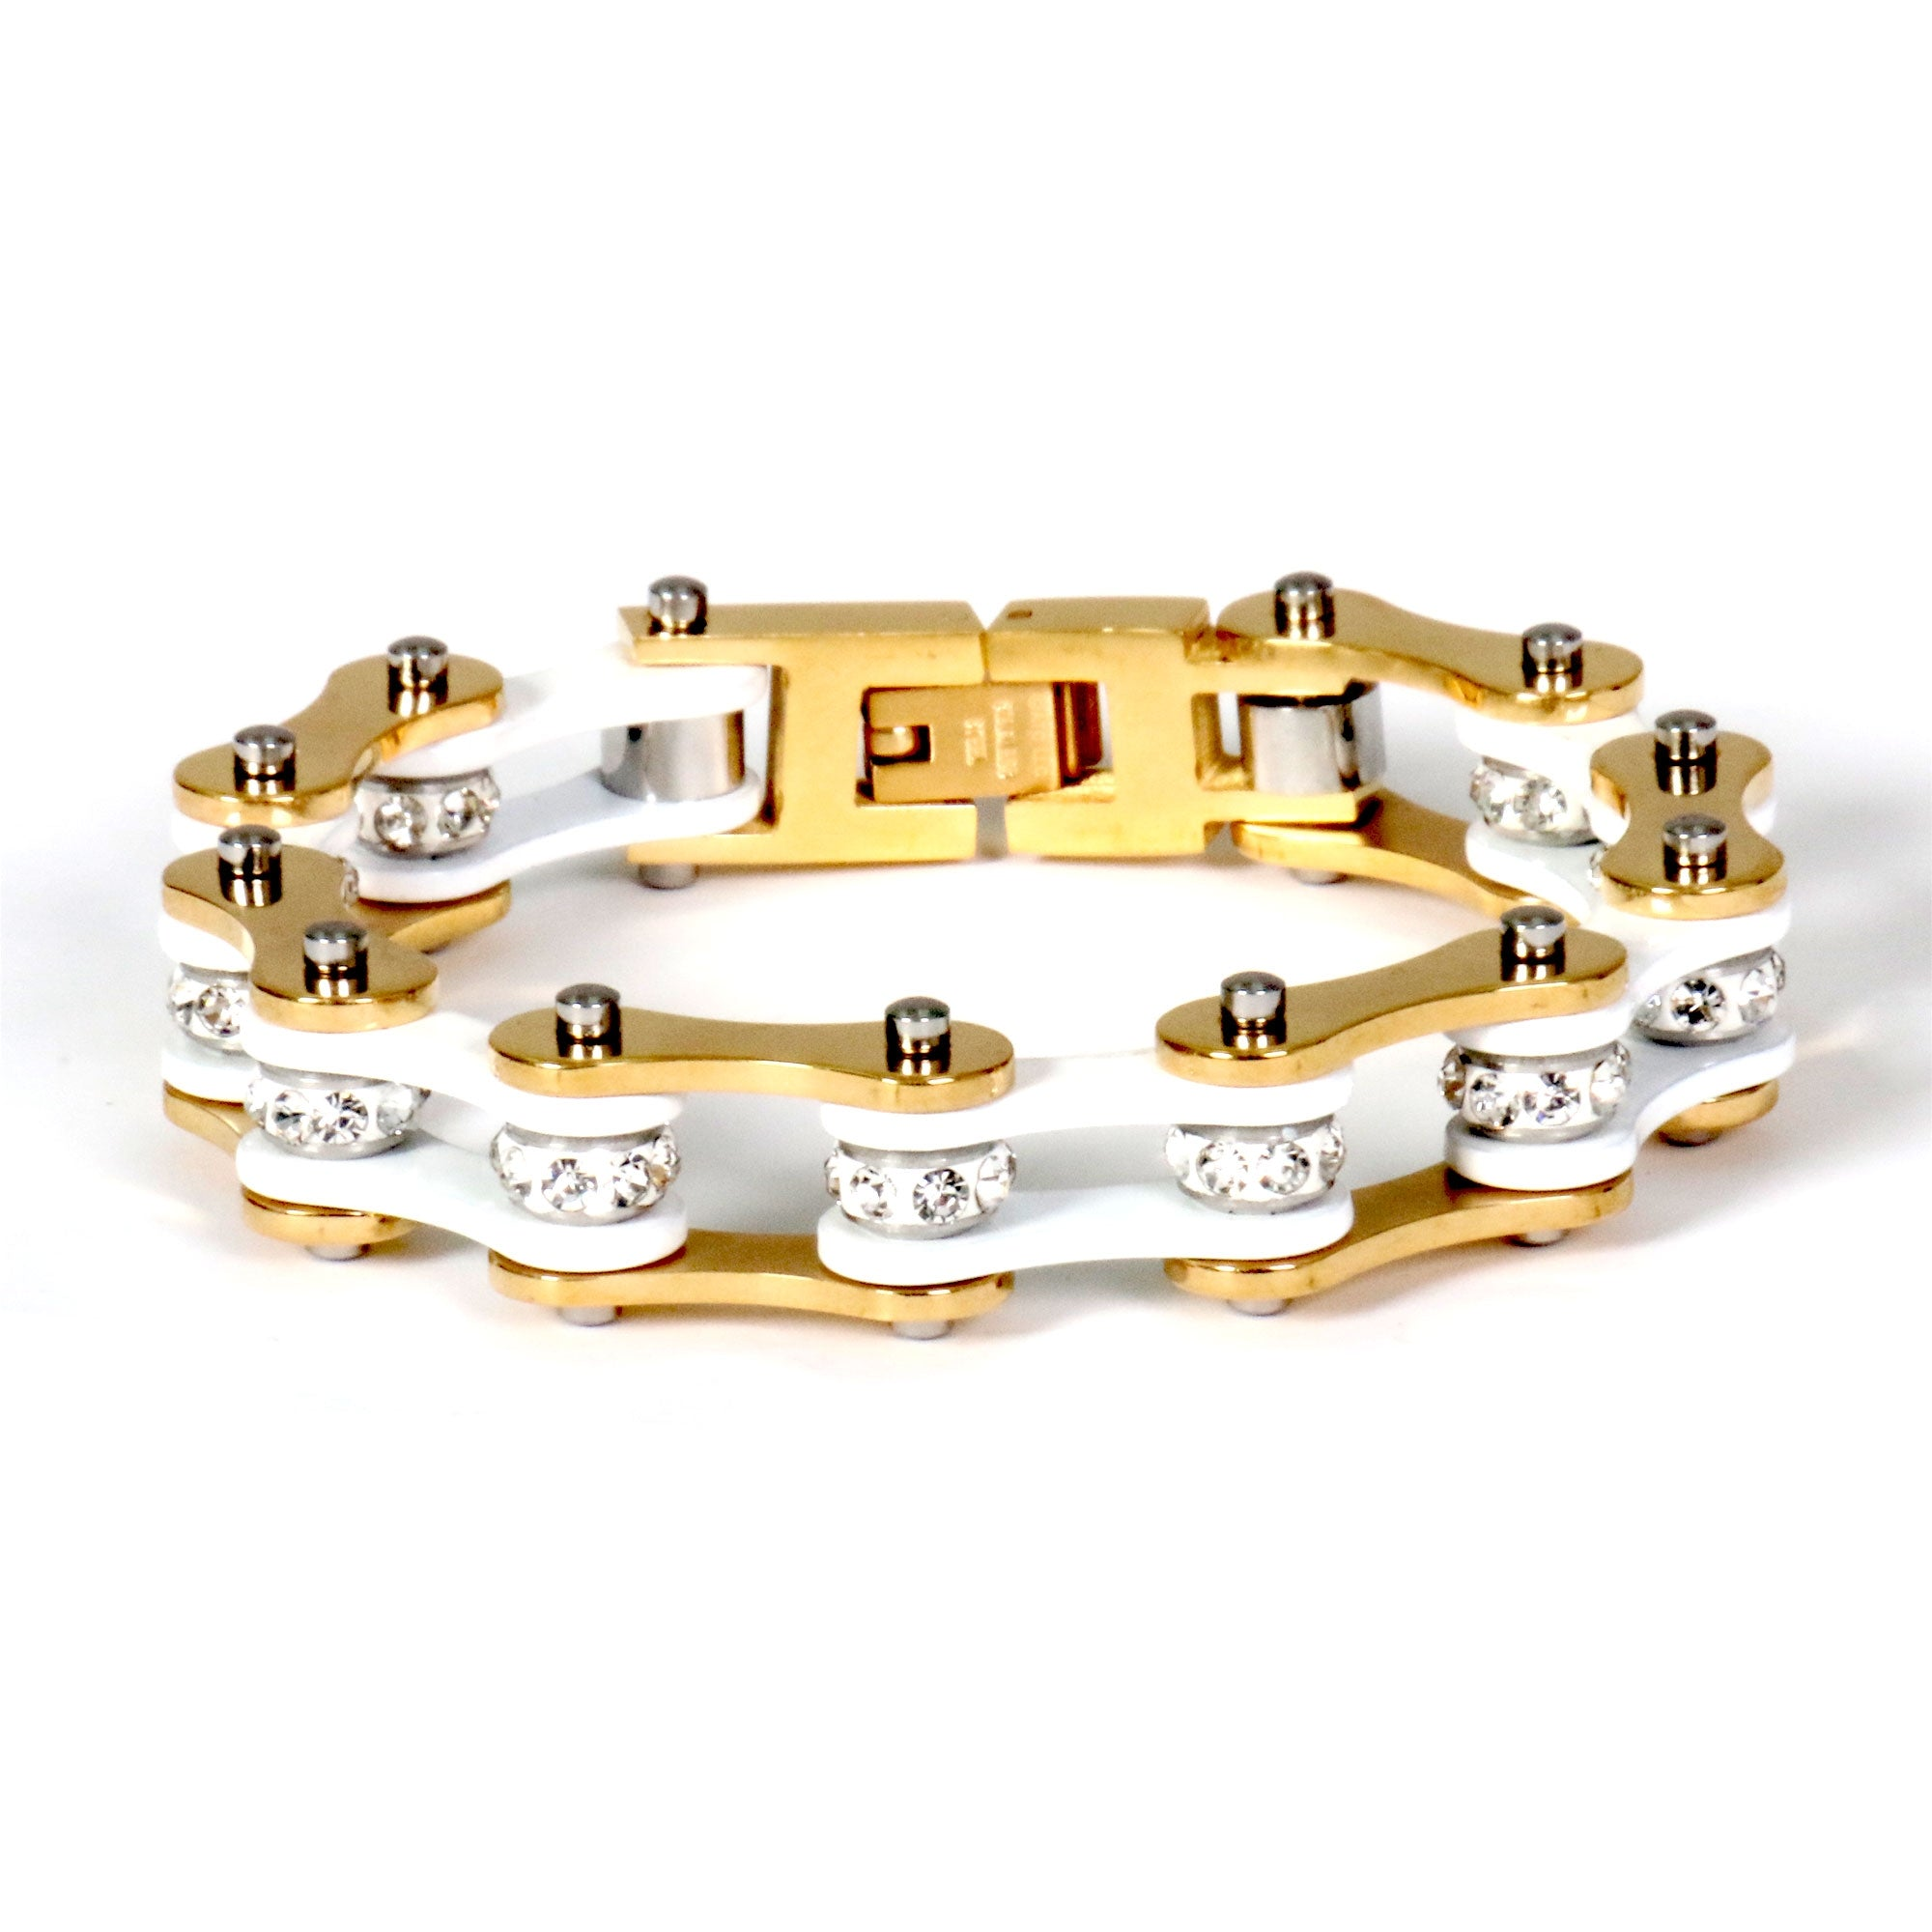 Hot Leathers White & Gold Motorcycle Chain Bracelet